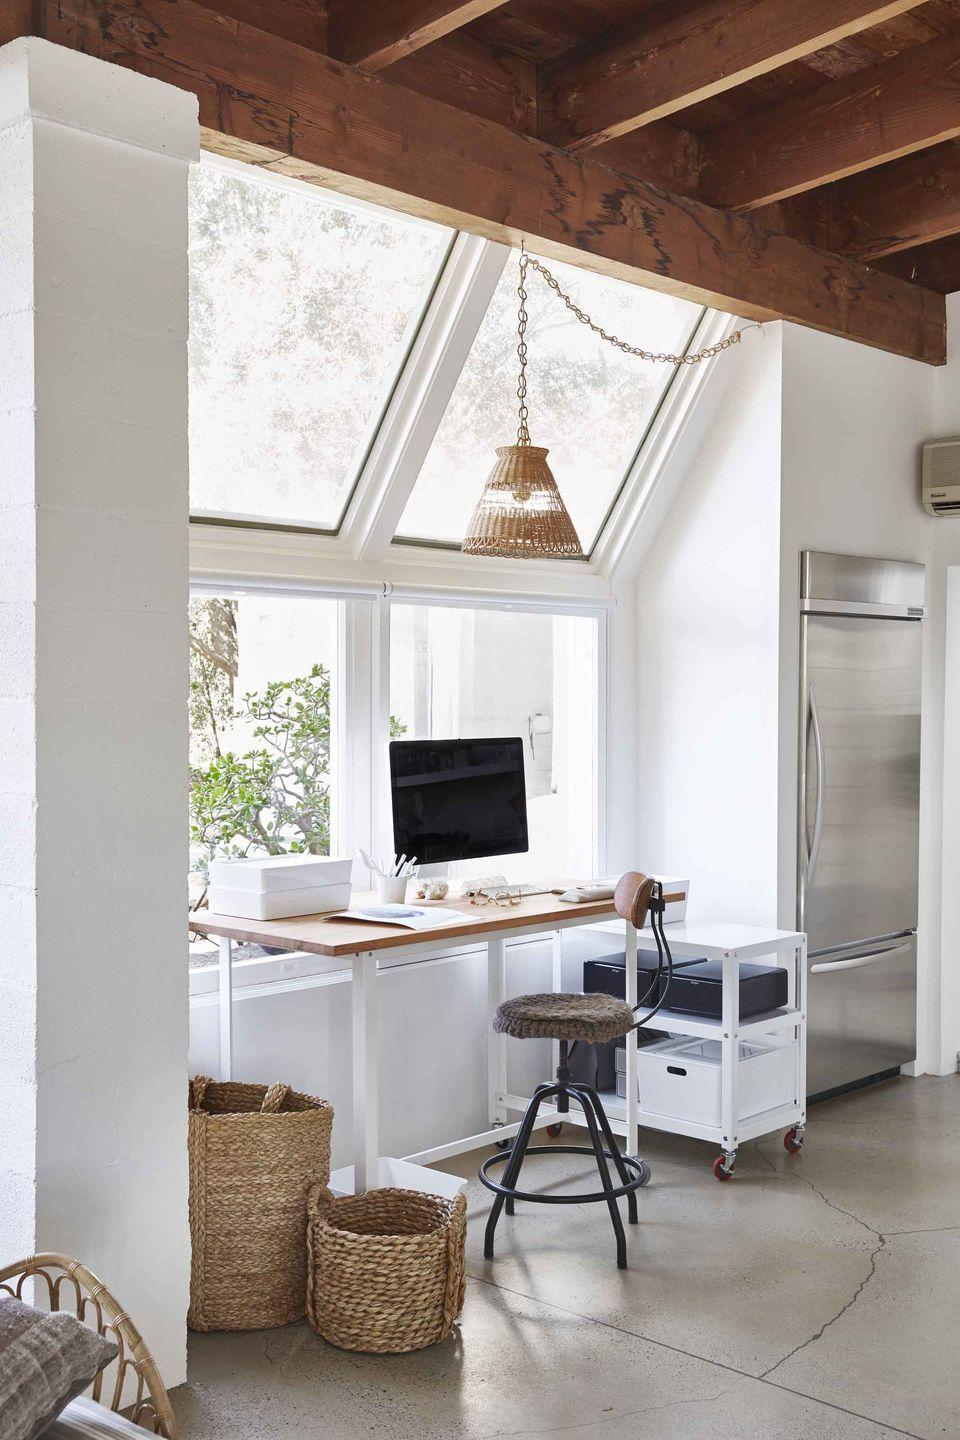 """<p>Photographer <a href=""""https://www.housebeautiful.com/design-inspiration/house-tours/a25647642/victoria-pearson-santa-barbara-house-tour/"""" rel=""""nofollow noopener"""" target=""""_blank"""" data-ylk=""""slk:Victoria Pearson"""" class=""""link rapid-noclick-resp"""">Victoria Pearson</a> combined a wooden top from Ikea and a wheeled CB2 base to create her own rolling desk, which allows for an easy change of scenery or workspace rearranging at a moment's notice. </p>"""